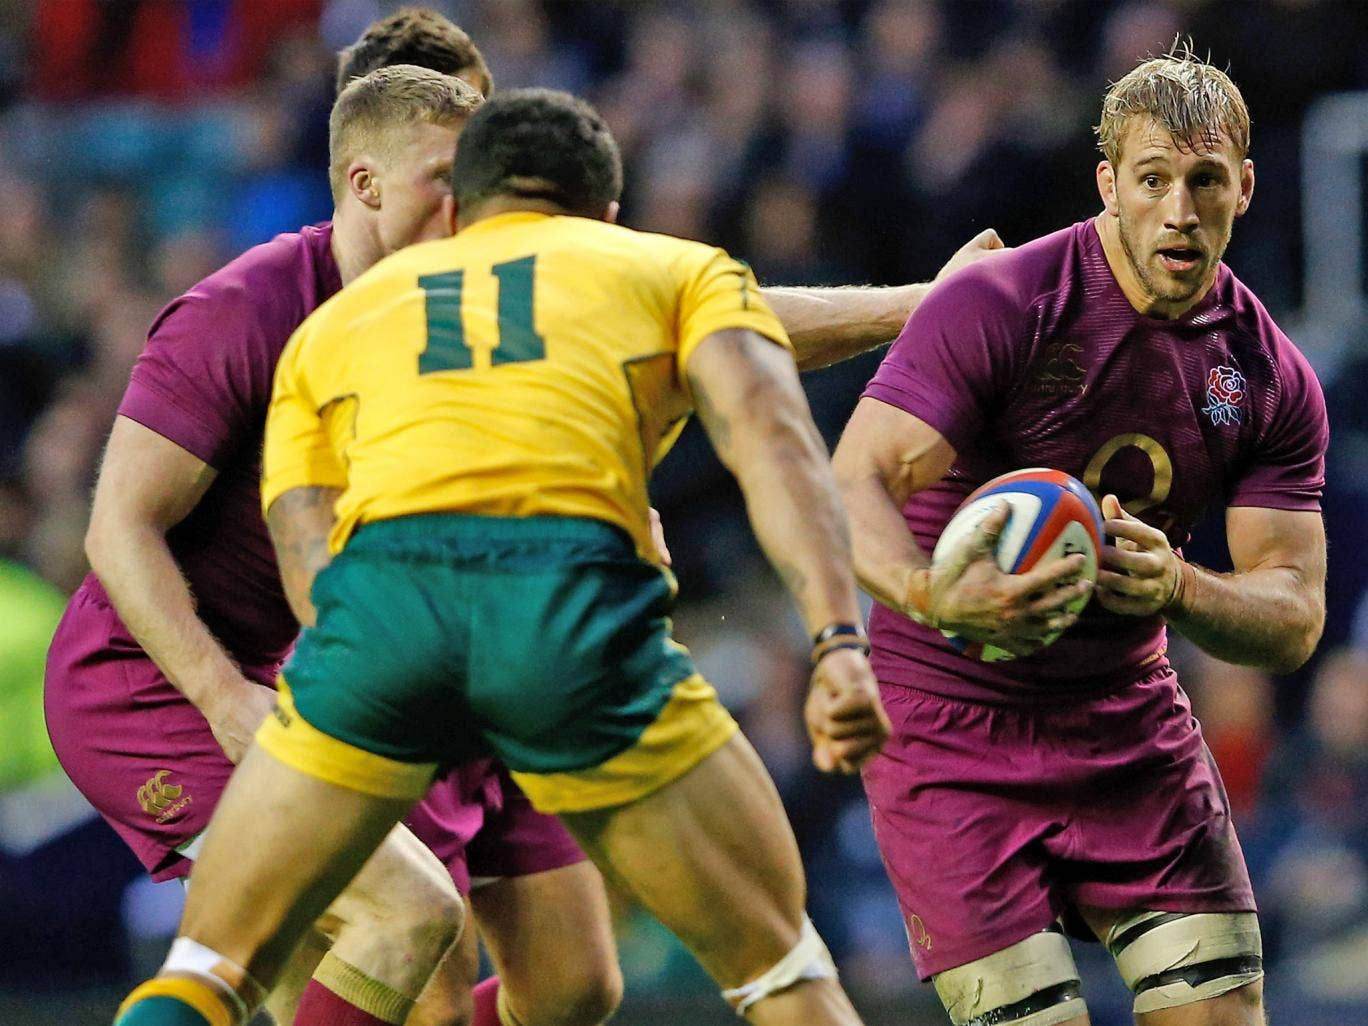 Chris Robshaw will have learned a lot from the defeat by Australia